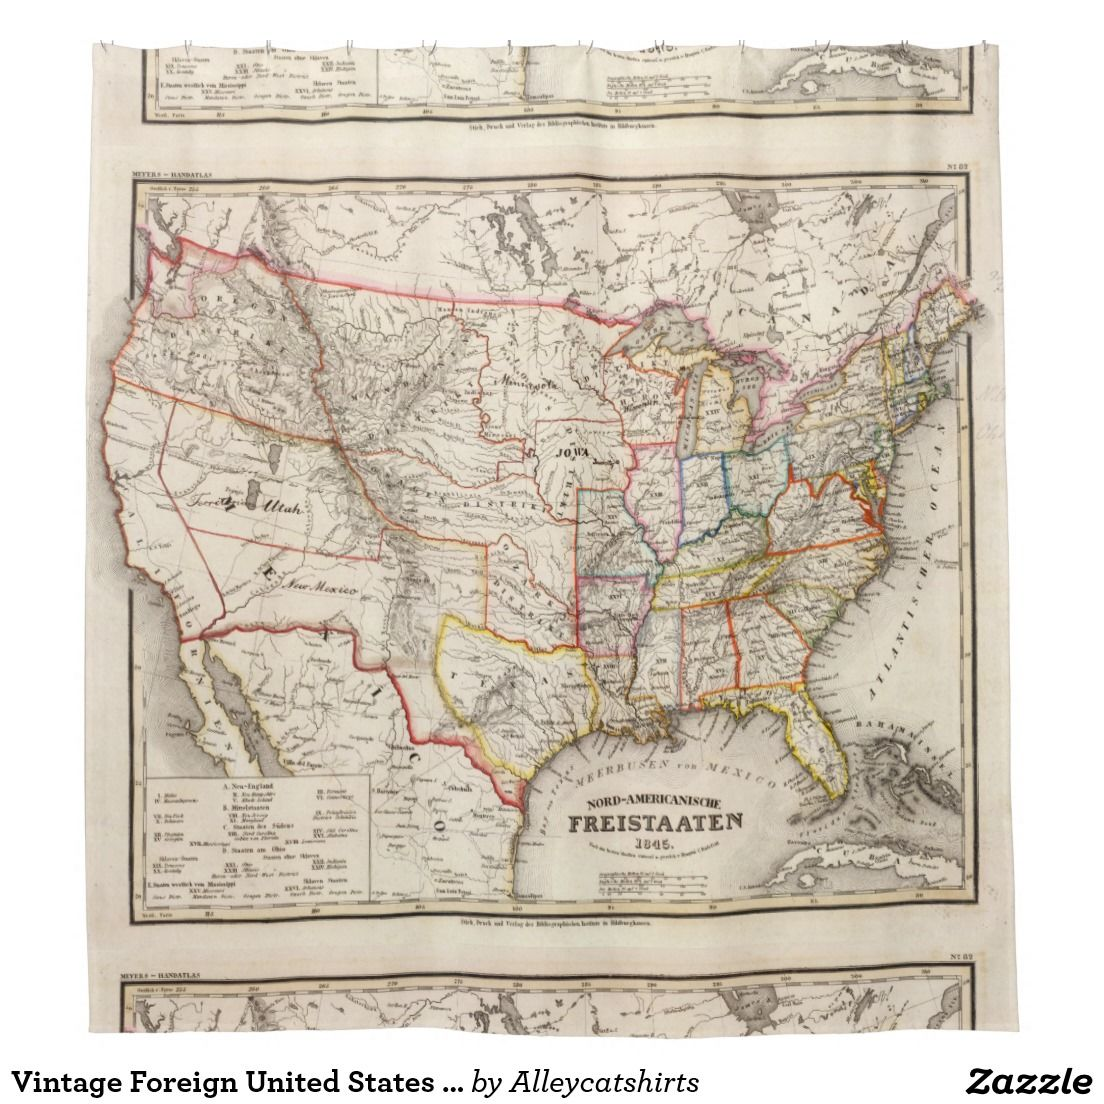 Vintage Foreign United States Map (1845) Shower Curtain ... on united states map bodies of water, united states map 1860, united states map southeast usa, united states canada mexico, united states map 1800, united states map 1836, united states map grade 1, united states map 1846, united states political map 2012, united states declares war on mexico, united states map 1865, united states map 1848, united states map 1820, united states map 1812, united states map 1823, united states map 1821, united states map 1830, united states political map with cities, united states map 1850, united states map 1847,